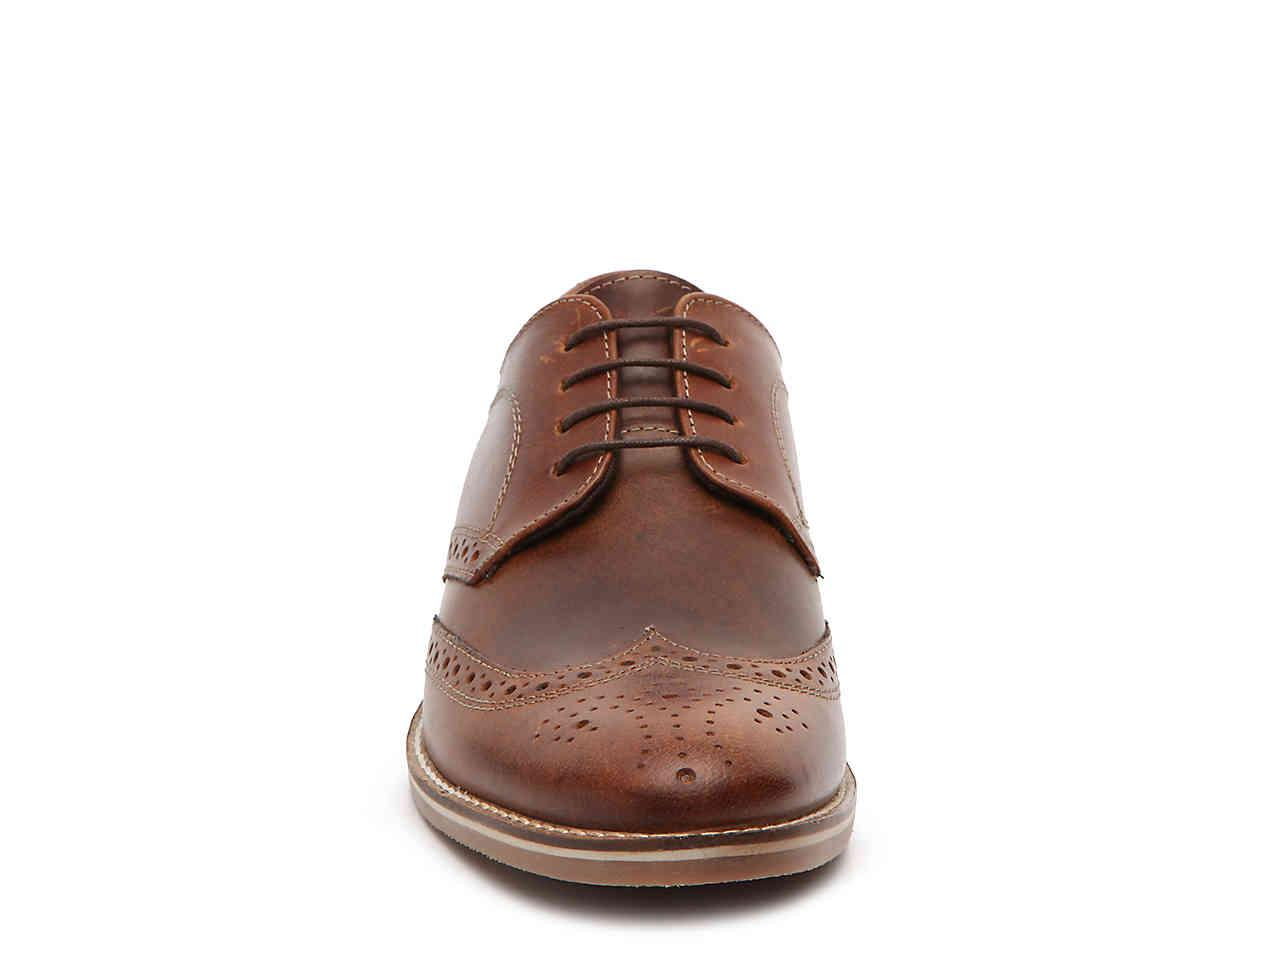 Lyst - Red Tape Checkley Wingtip Oxford in Brown for Men